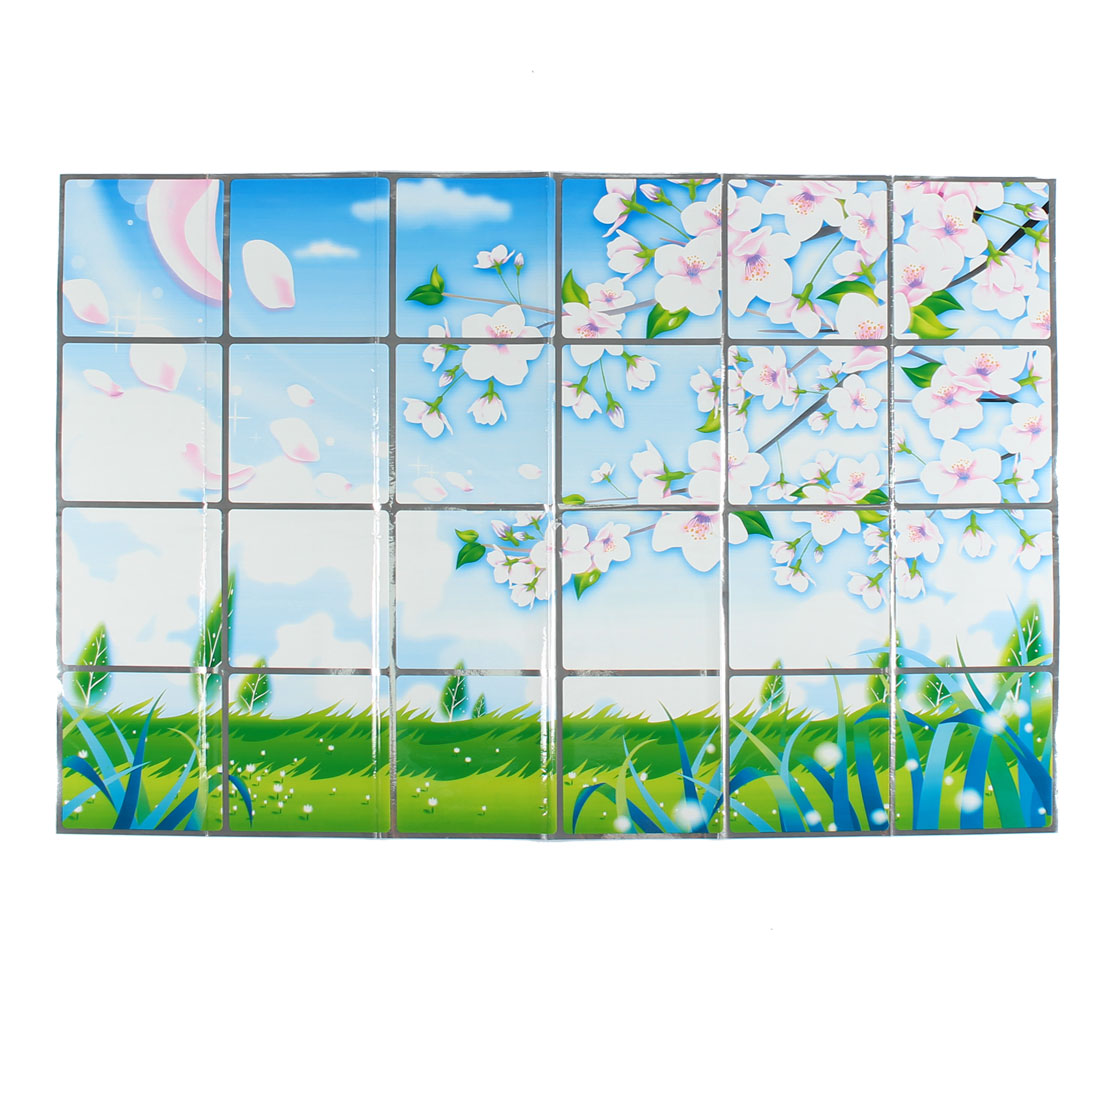 Kitchen Plum Blossom Pattern Removable Self-adhesive Oilproof Wall Window Sticker 90 x 60cm